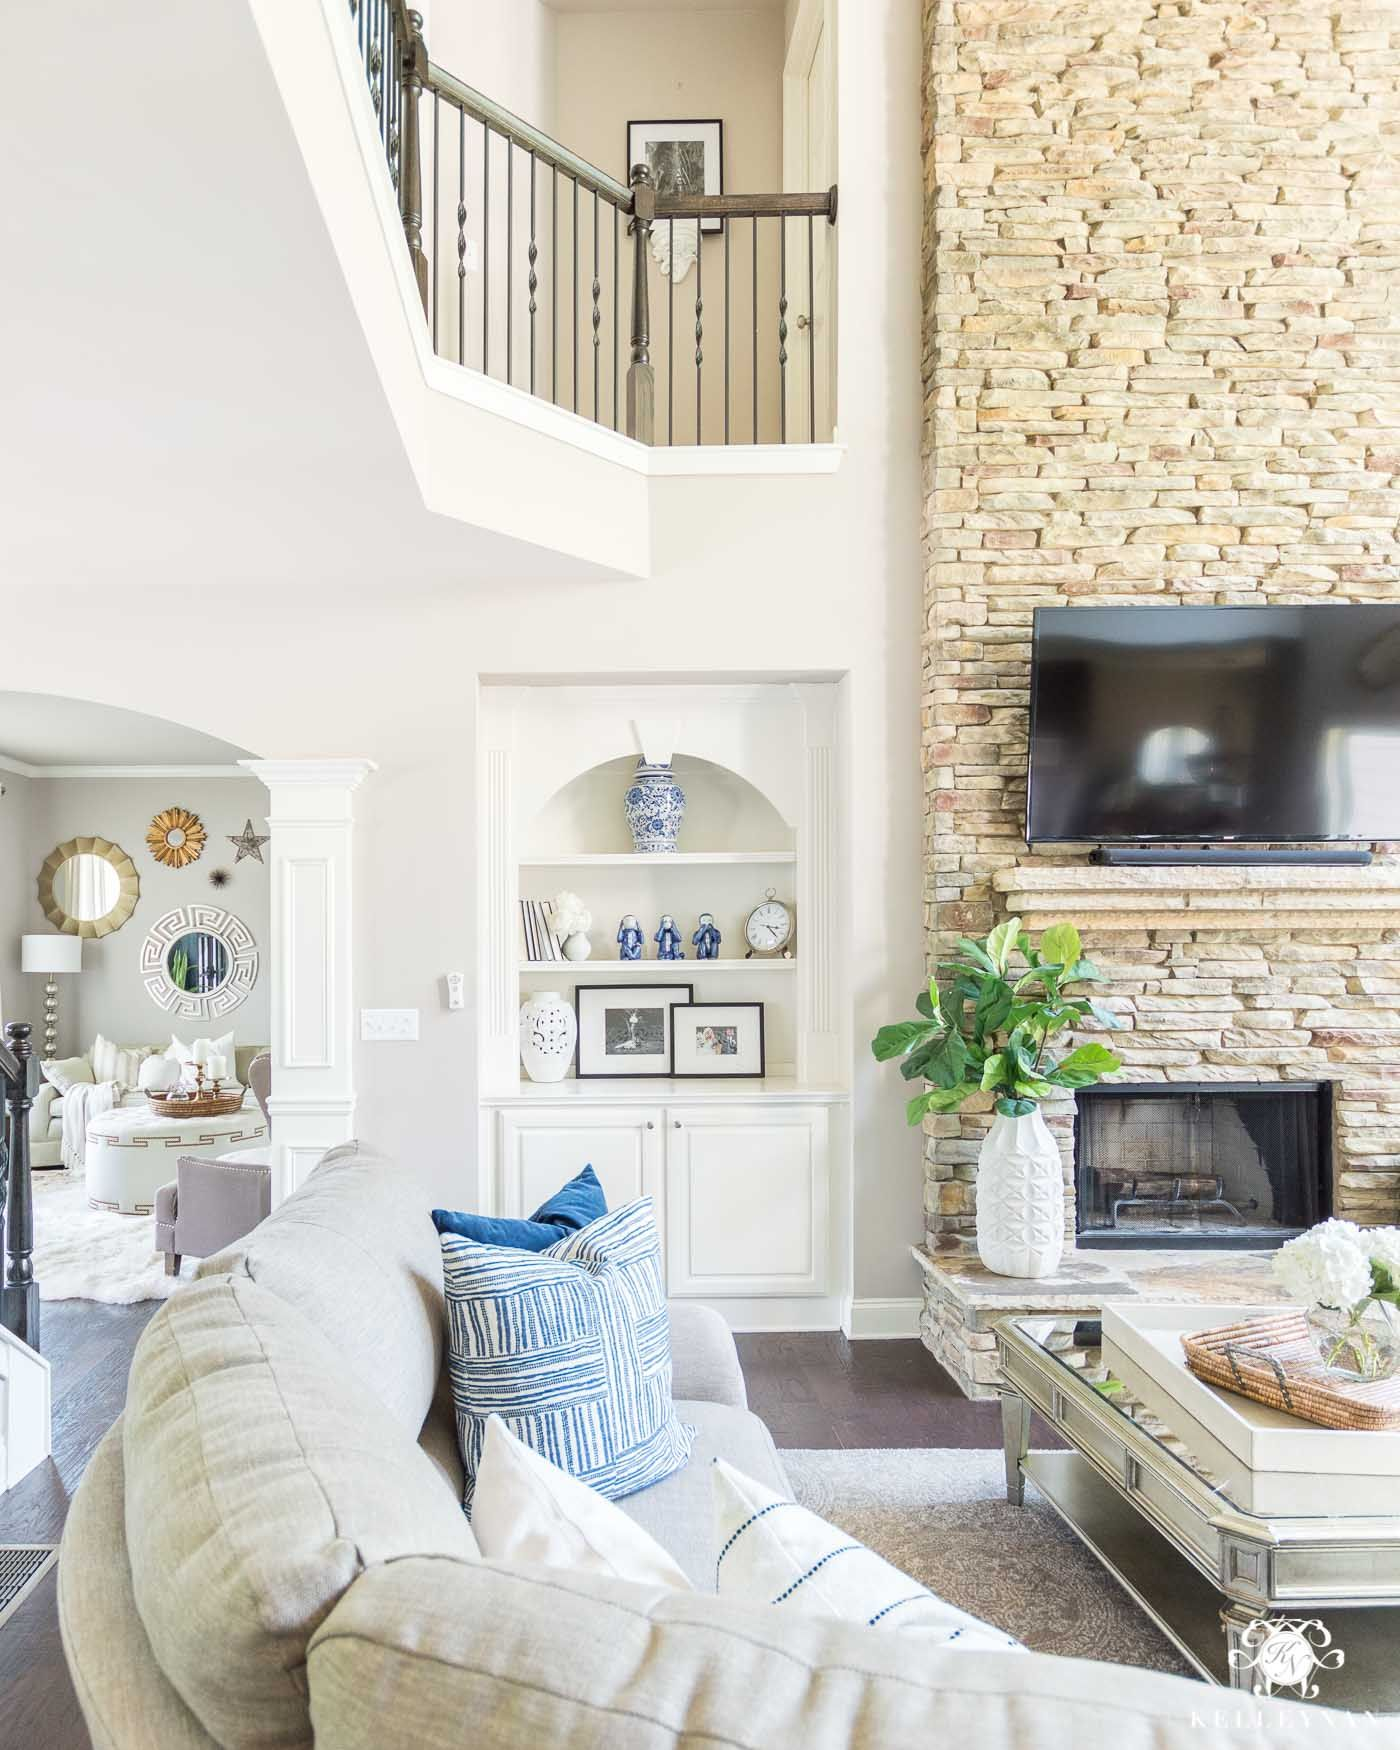 Family room game organization ideas in a two story living room with